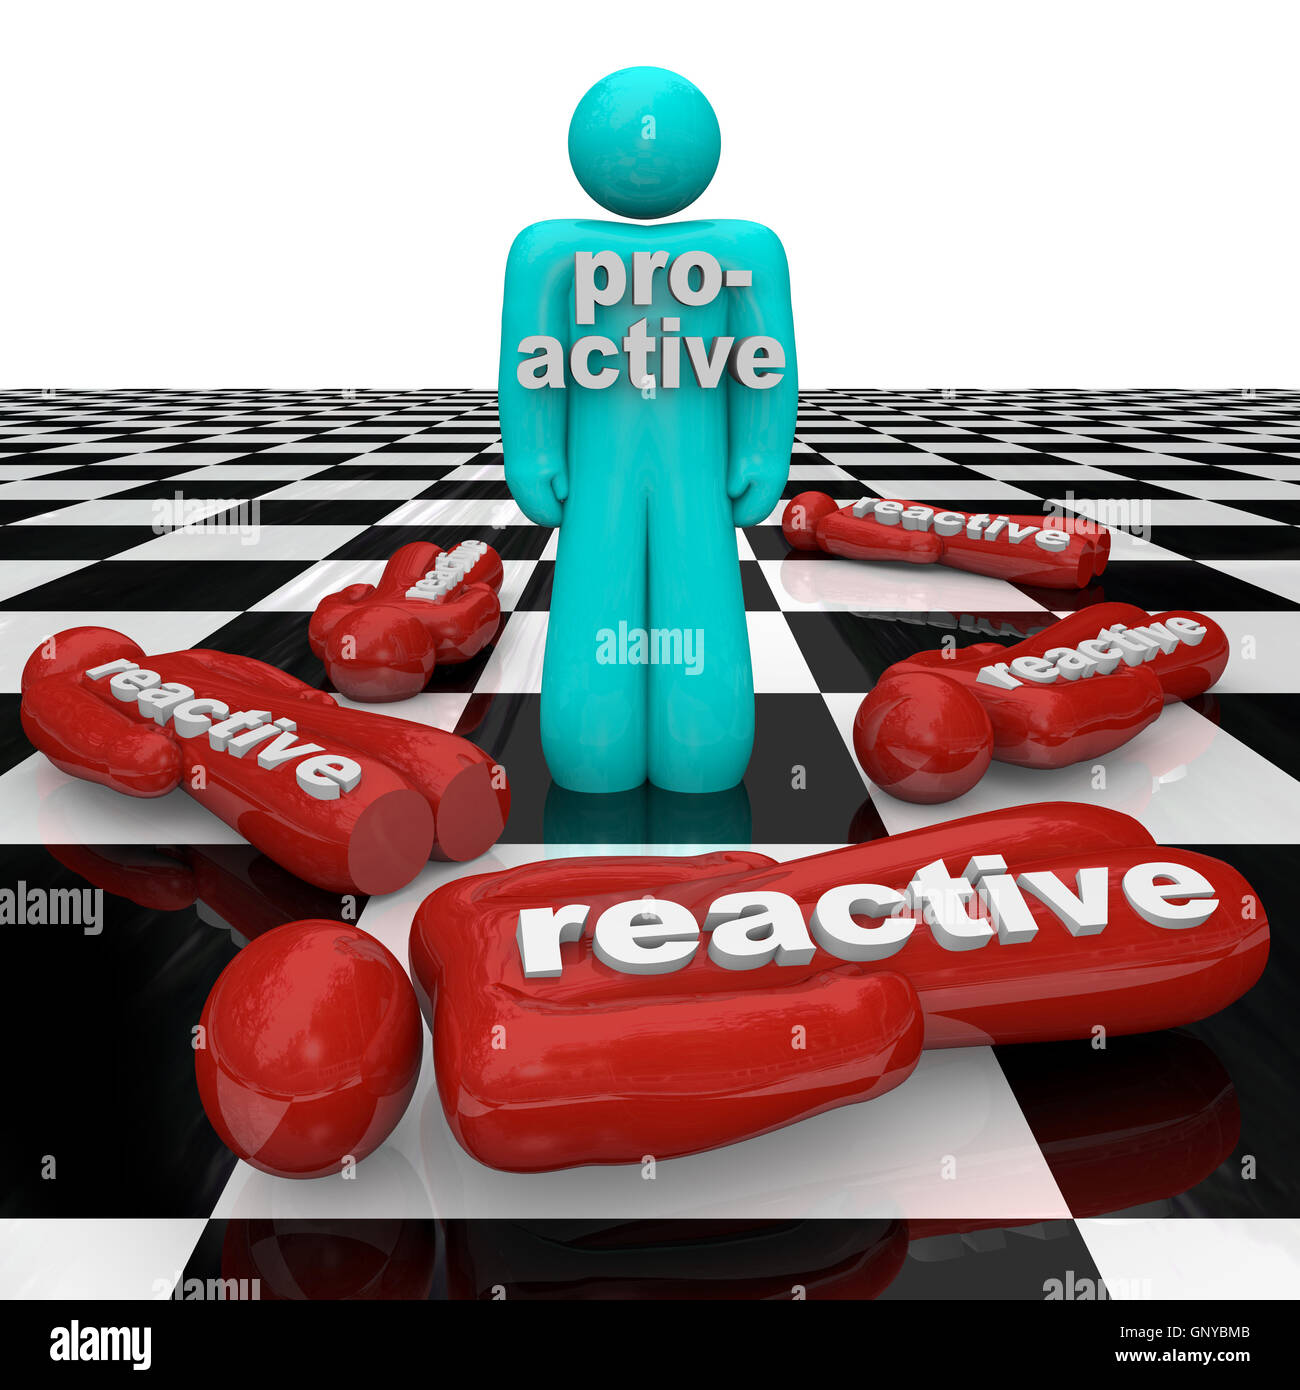 Proactive Person Wins Vs Reactive Inactivity People Lose - Stock Image